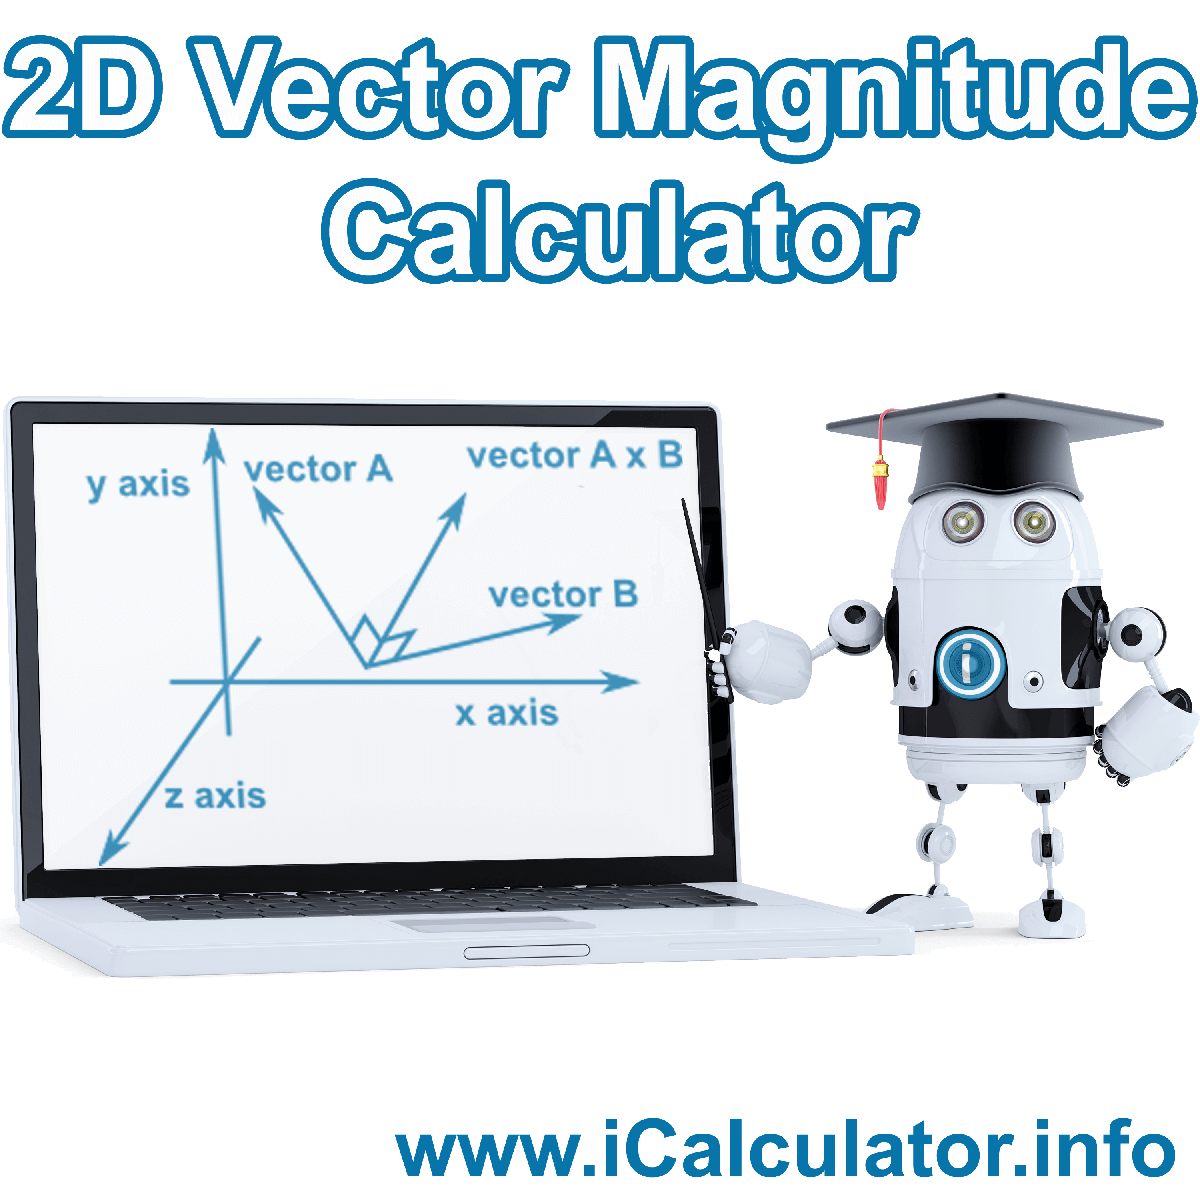 2D Vector Magnitude Calculator. This image shows 2D Vector Magnitude with associated calculations used by the 2D Vector Magnitude Calculator